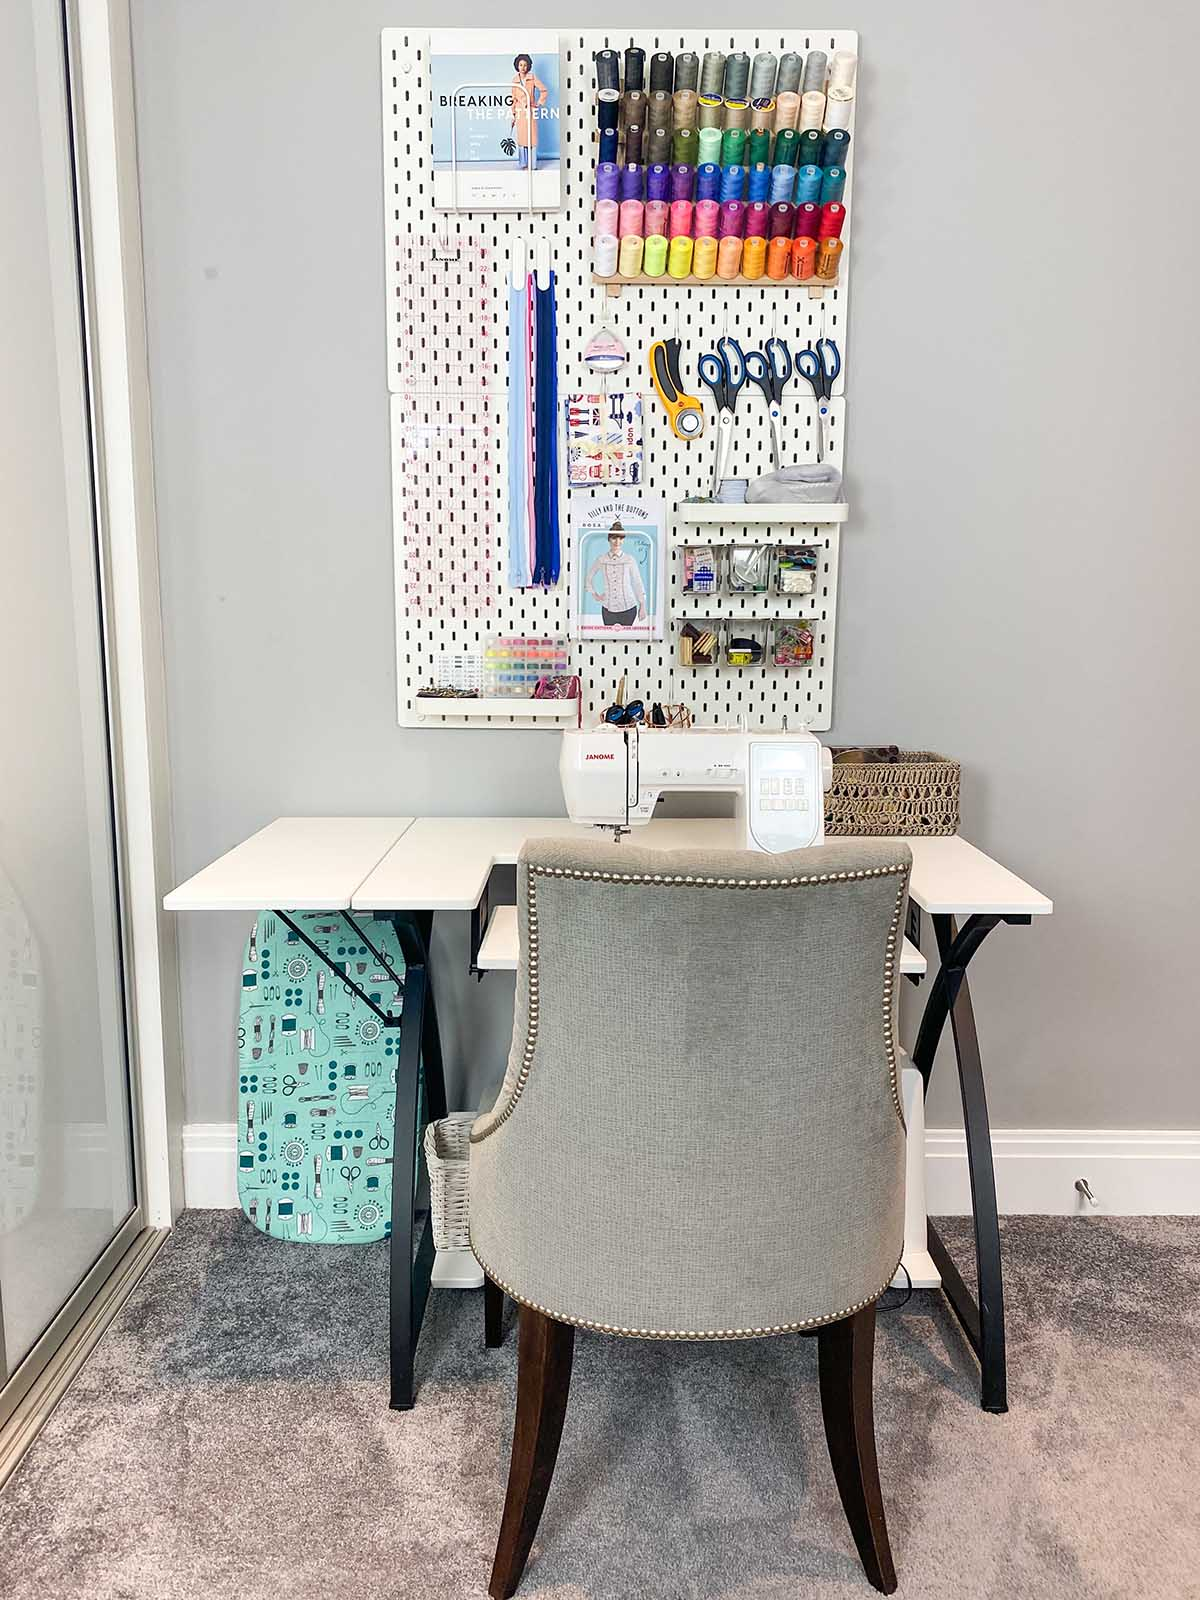 Ikea sewing room peg board ideas, sewing table and storage with a sewing machine